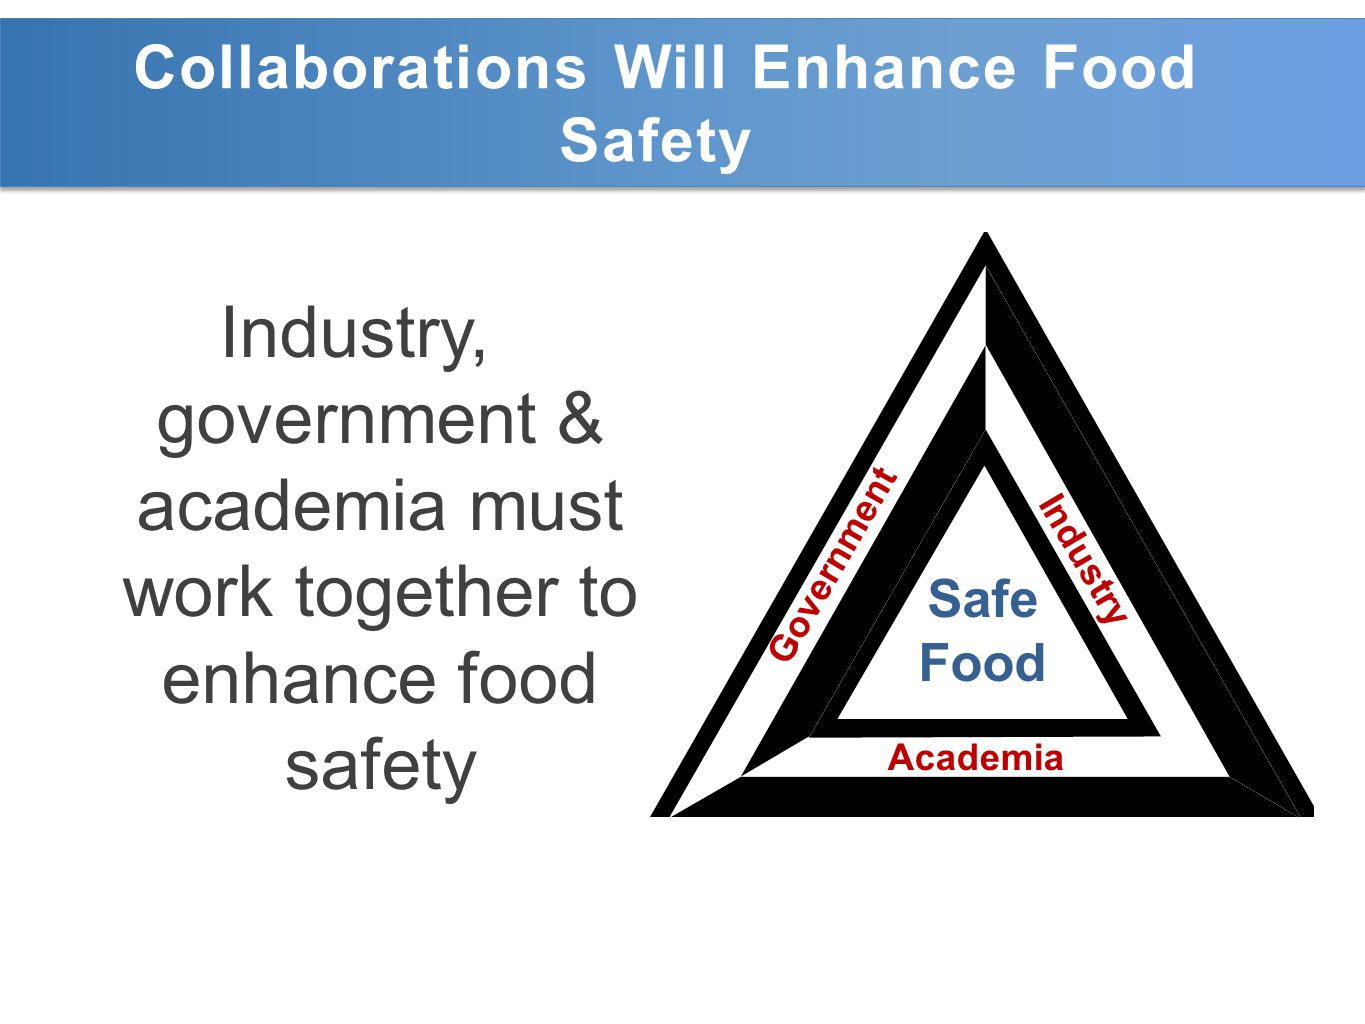 Collaborations Will Enhance Food Safety